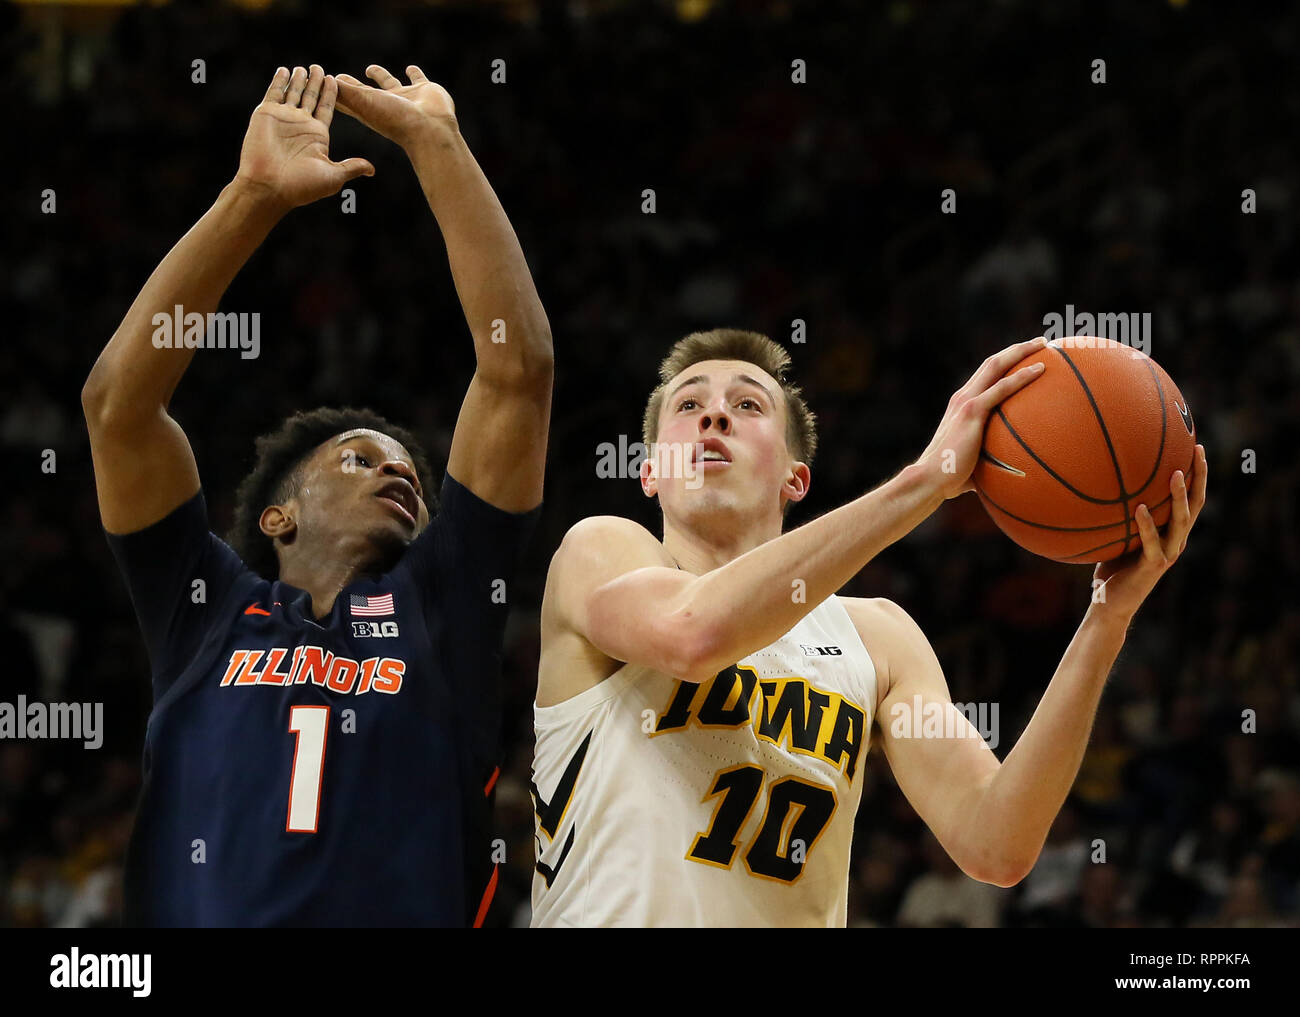 January 20, 2019 - Iowa City, Iowa, U.S. - Iowa's Joe Wieskamp #10 goes up for two-points against Illinois Trent Frazier #1 during Sunday's basketball game against the University of Illinois in Carver-Hawkeye Arena  in Iowa City. (Credit Image: © Kevin E. Schmidt/Quad-City Times via ZUMA Wire) - Stock Image